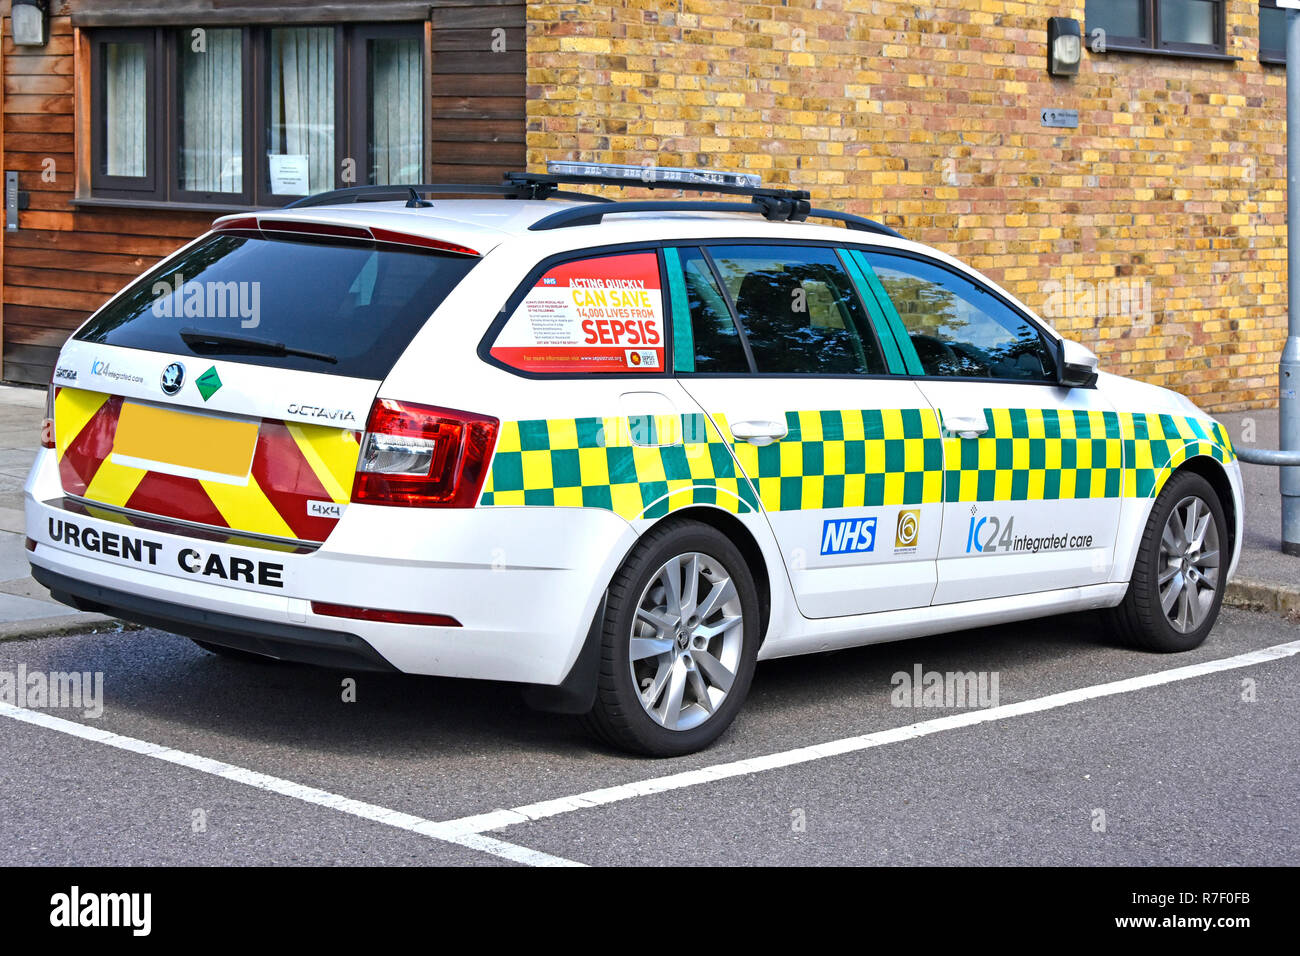 Healthcare awareness poster advert promotion saving lives from Sepsis NHS parked doctors car window in National Health service hospital  England UK - Stock Image